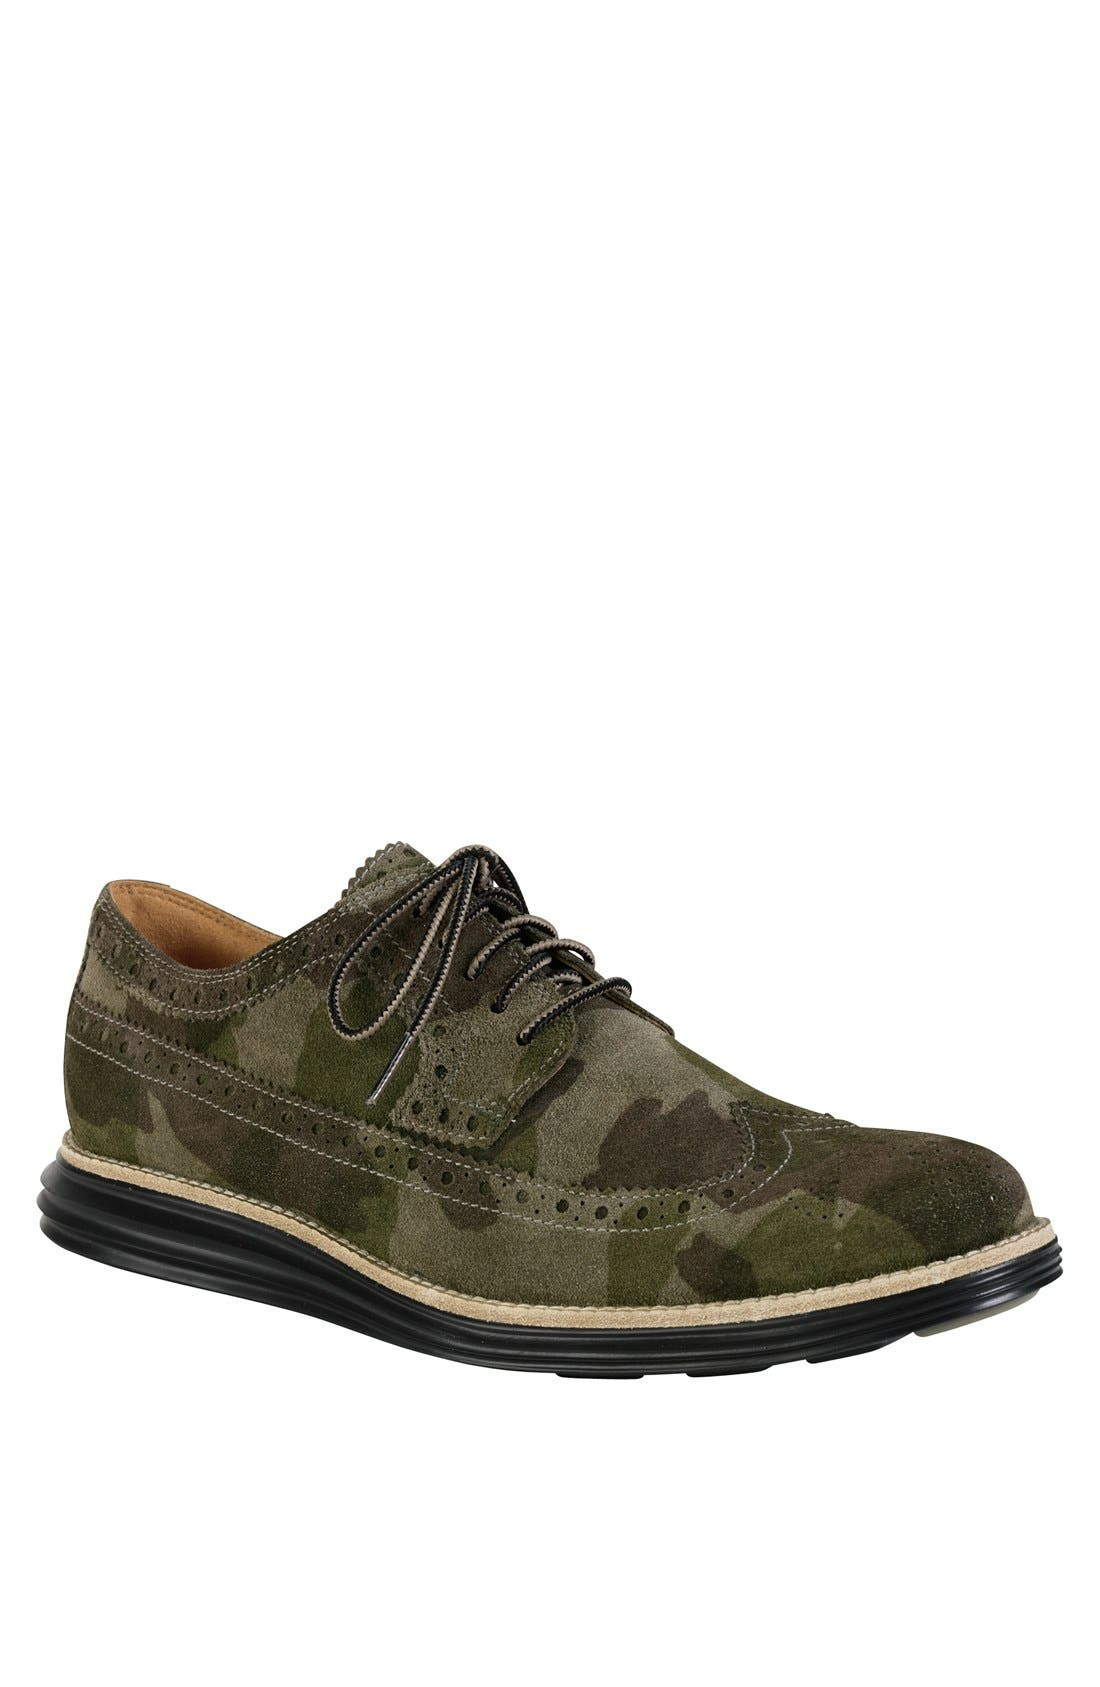 Alternate Image 1 Selected - Cole Haan 'LunarGrand' Longwing   (Men)